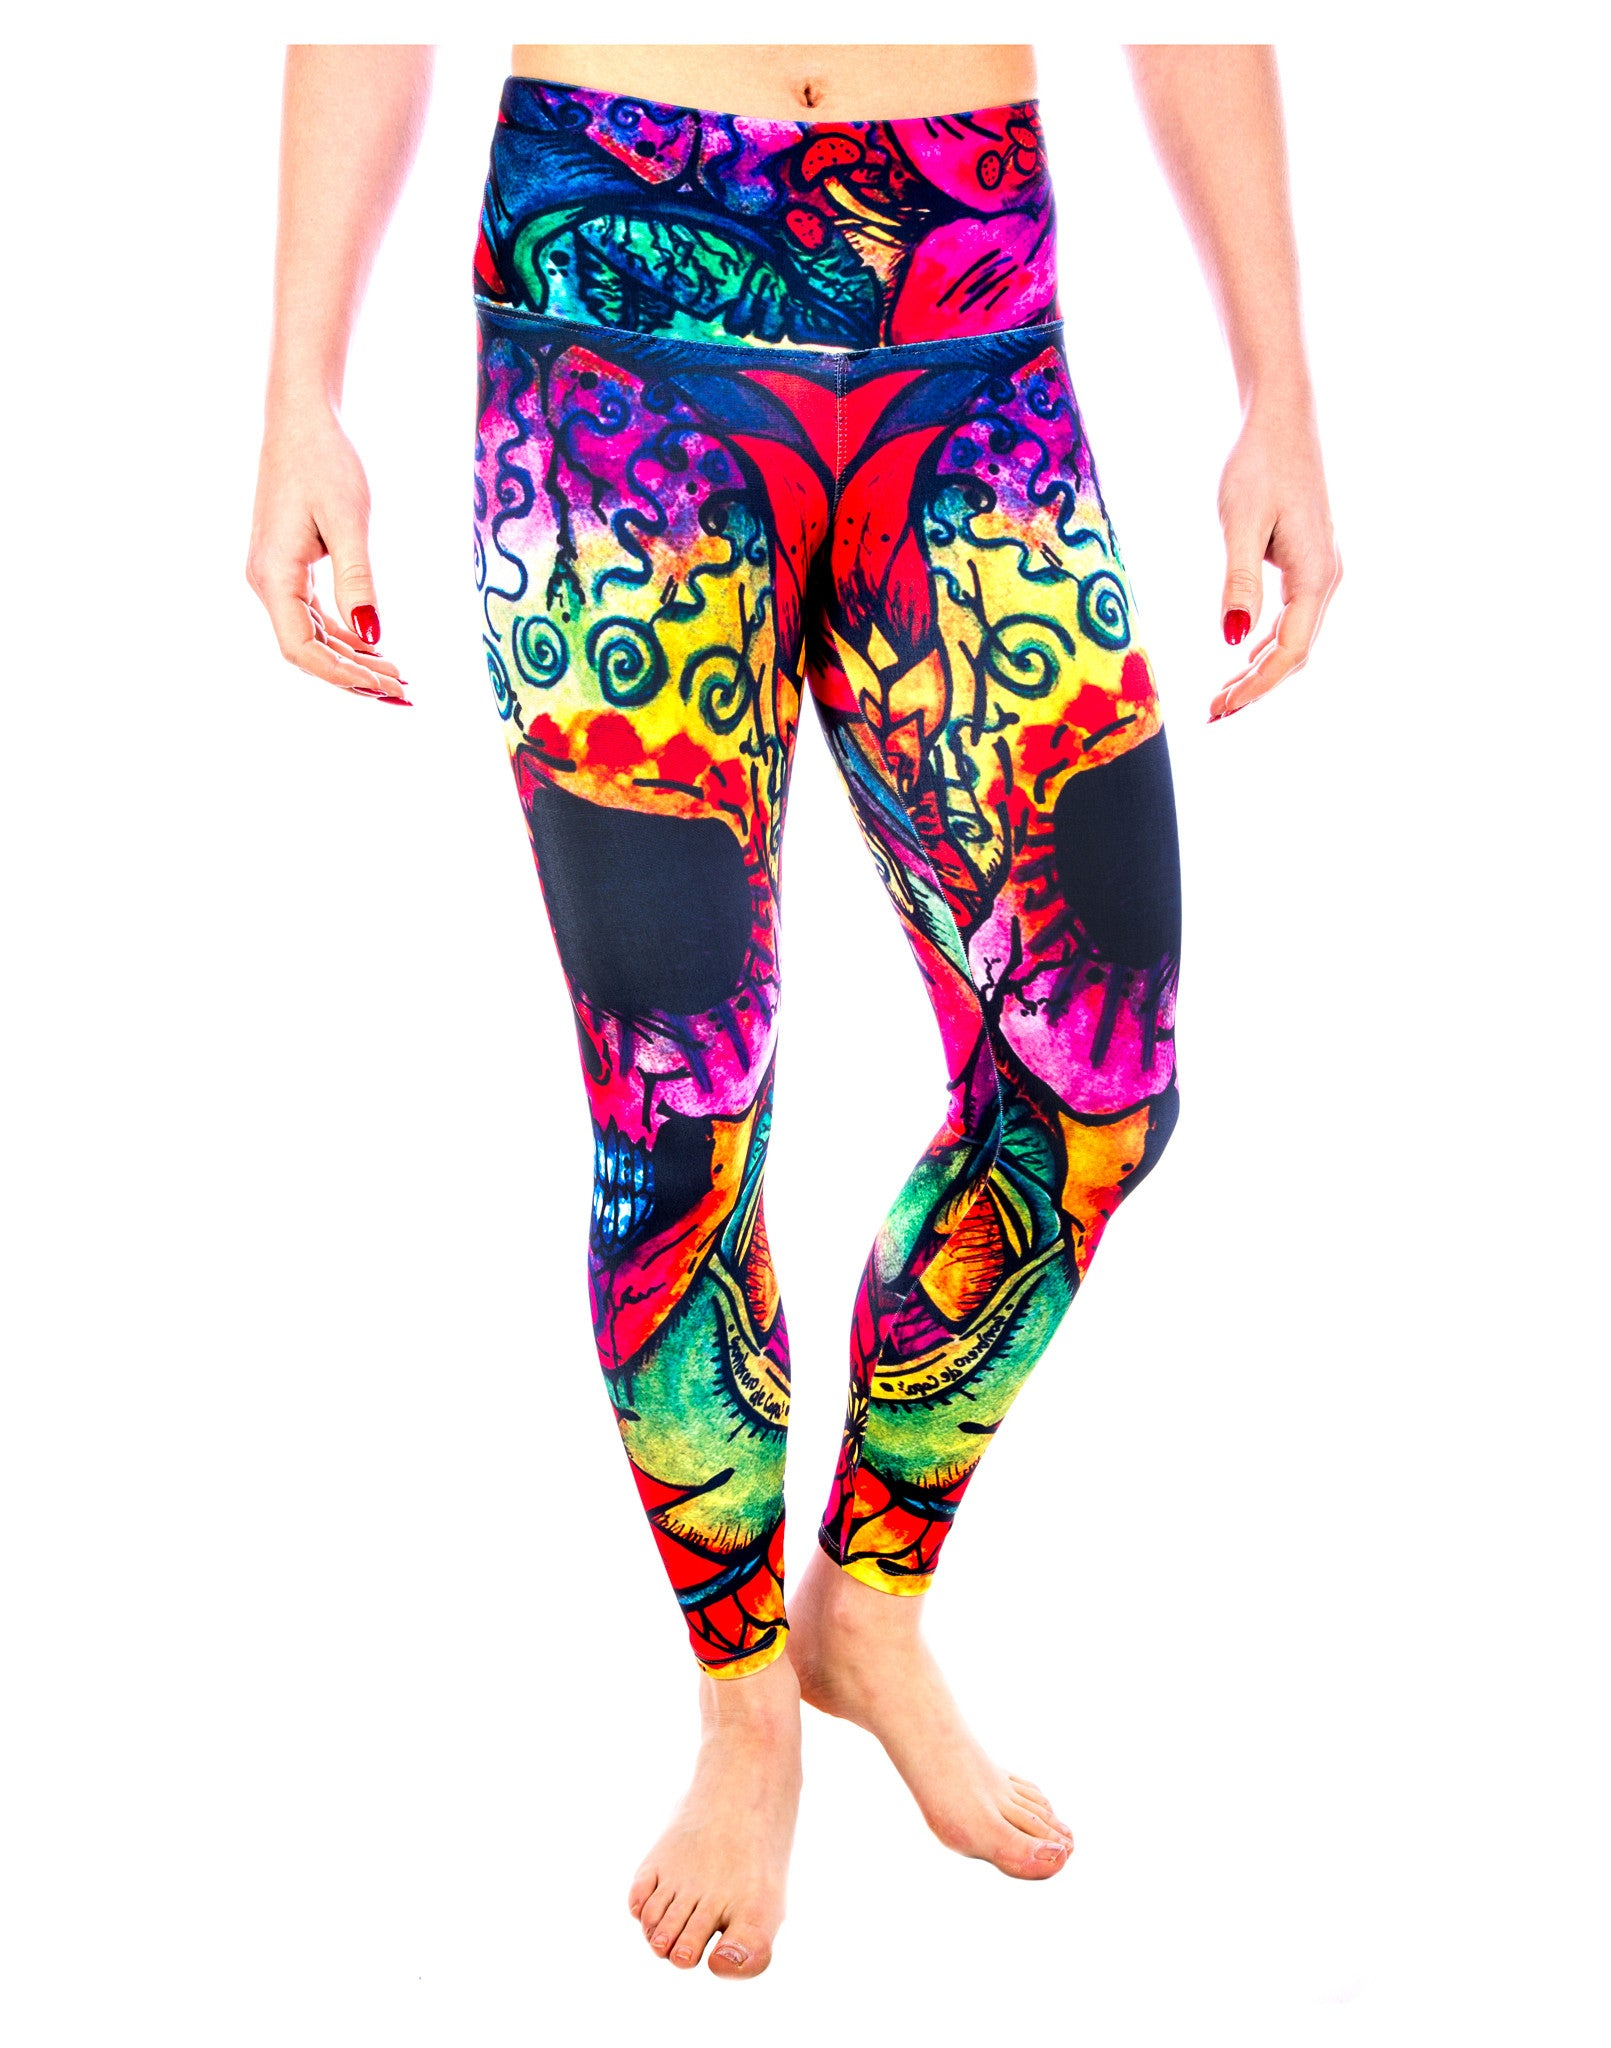 Skull Yoga Pants - Sugar Skull Radiance Legging - Skull Swag Collection by LavaLoka